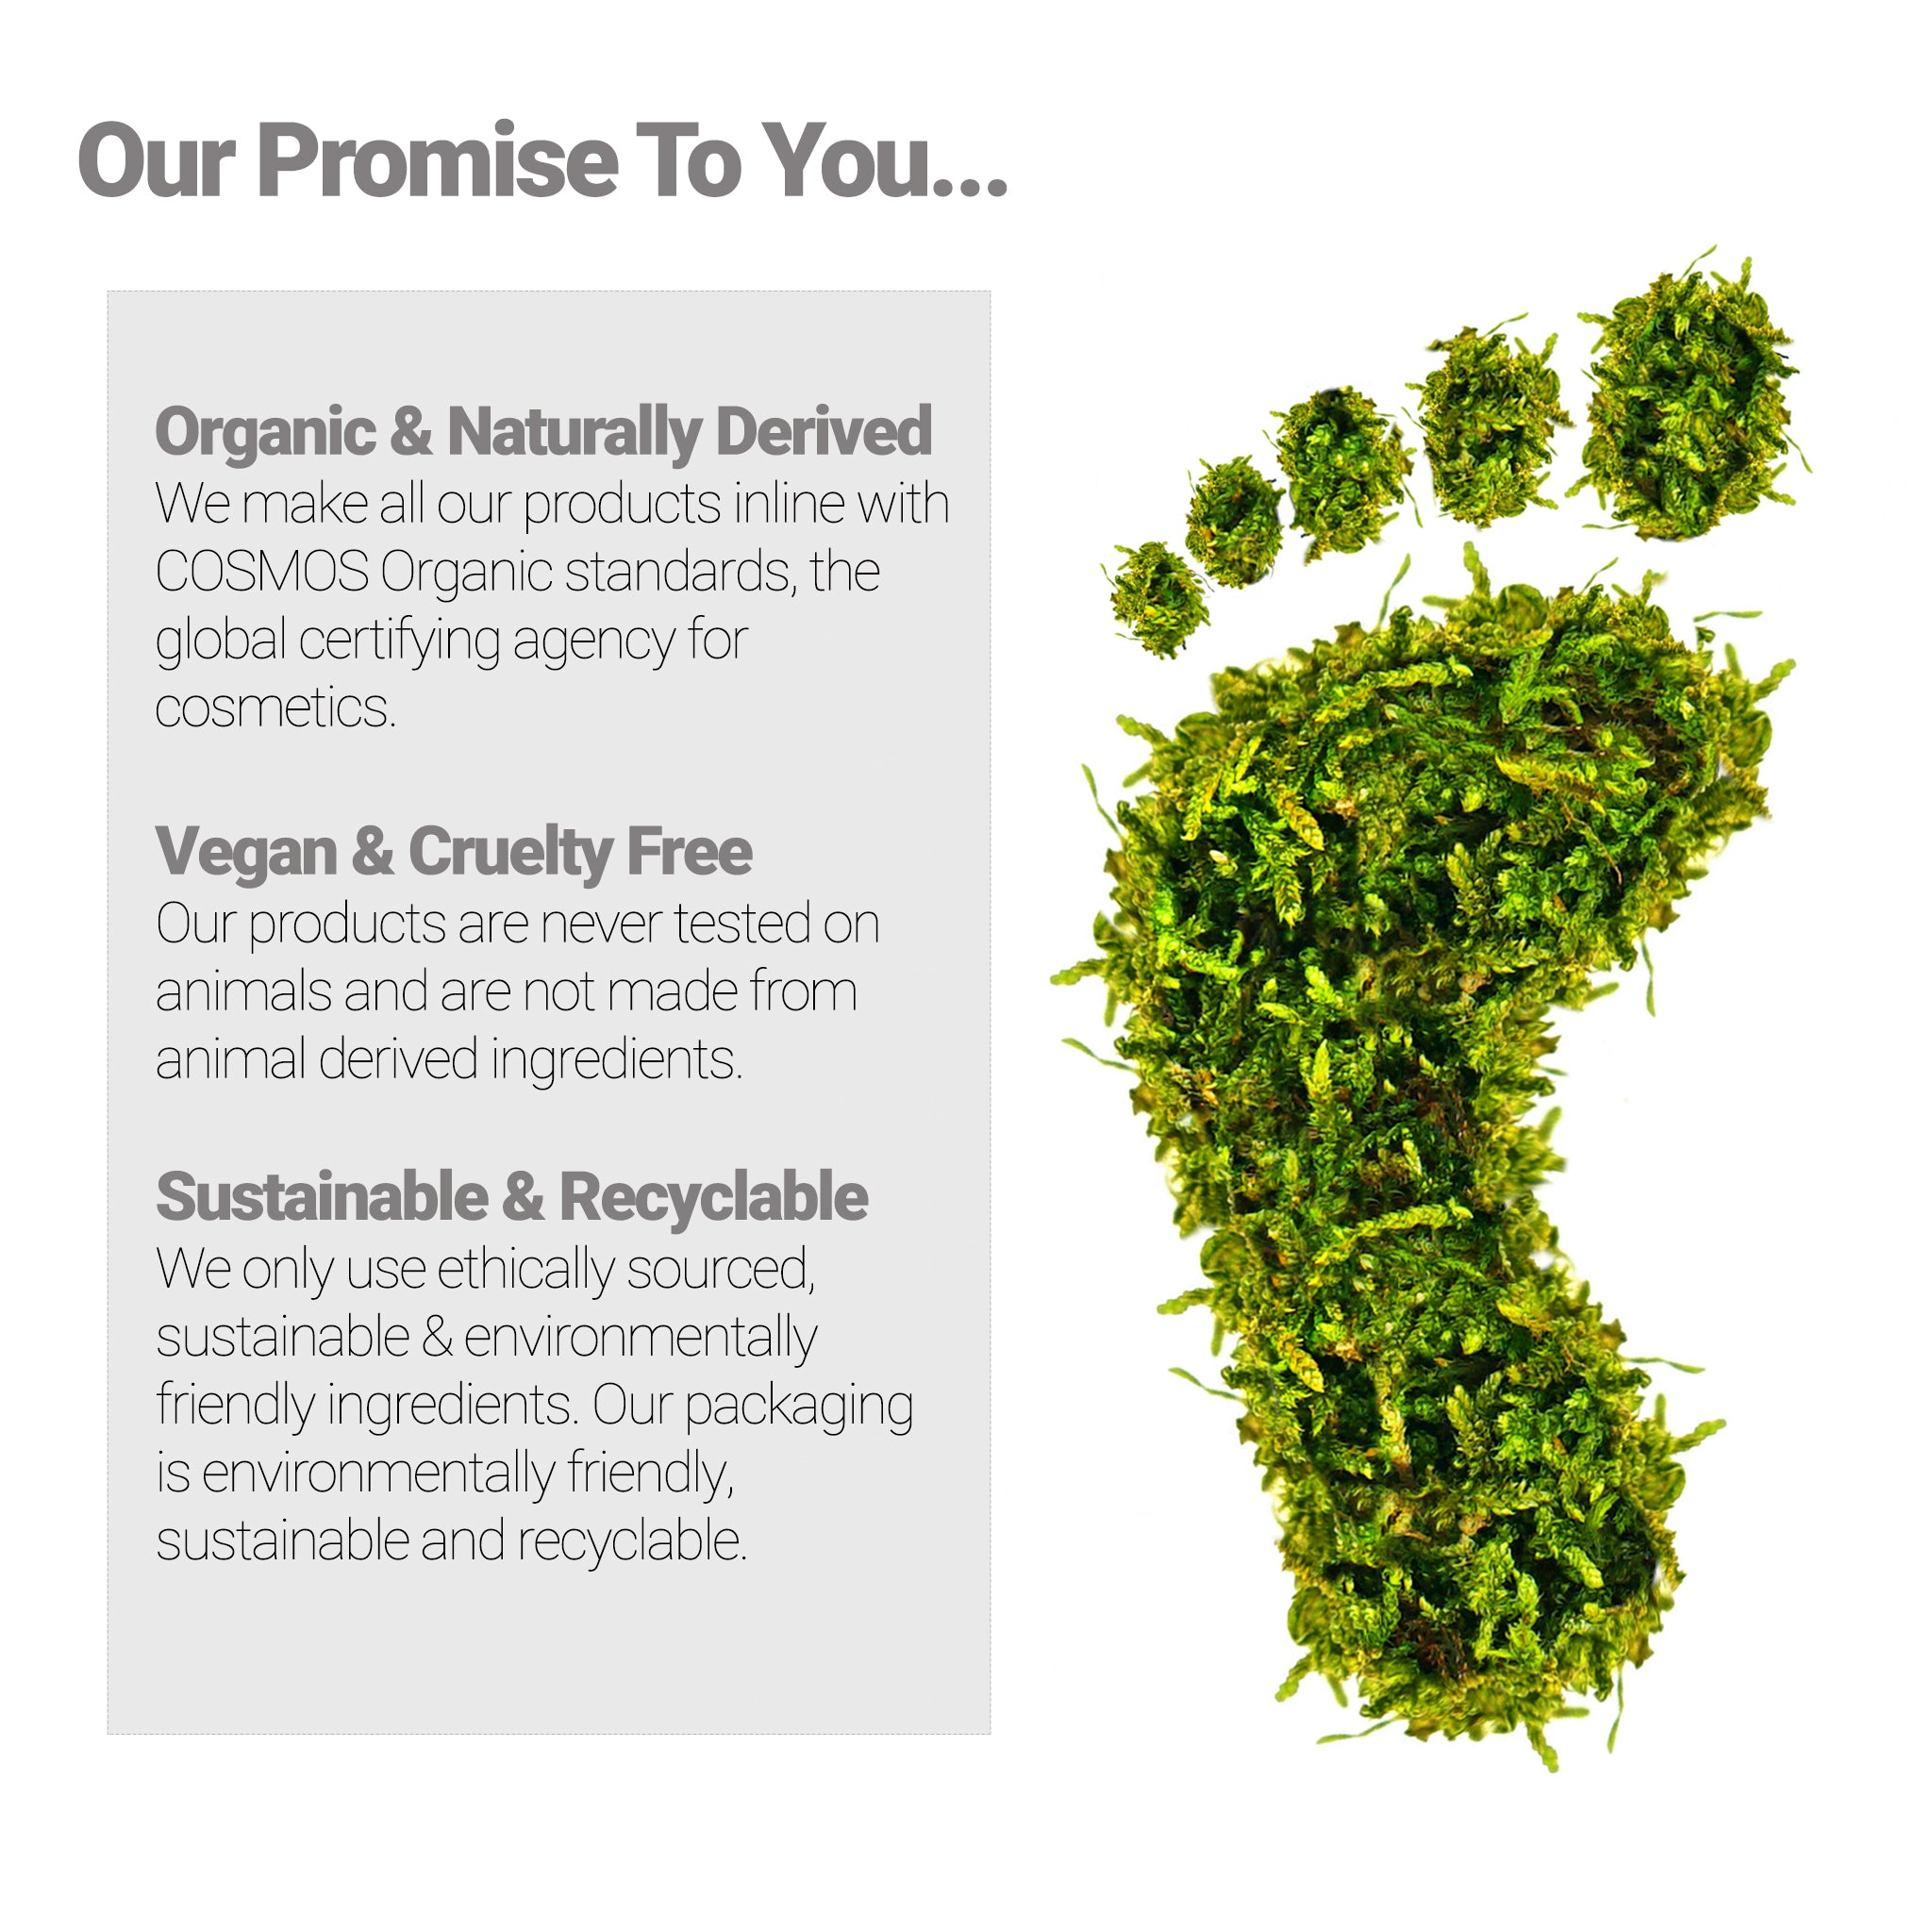 Sustainable skin care. Pure organic ingredients and recyclable packaging.